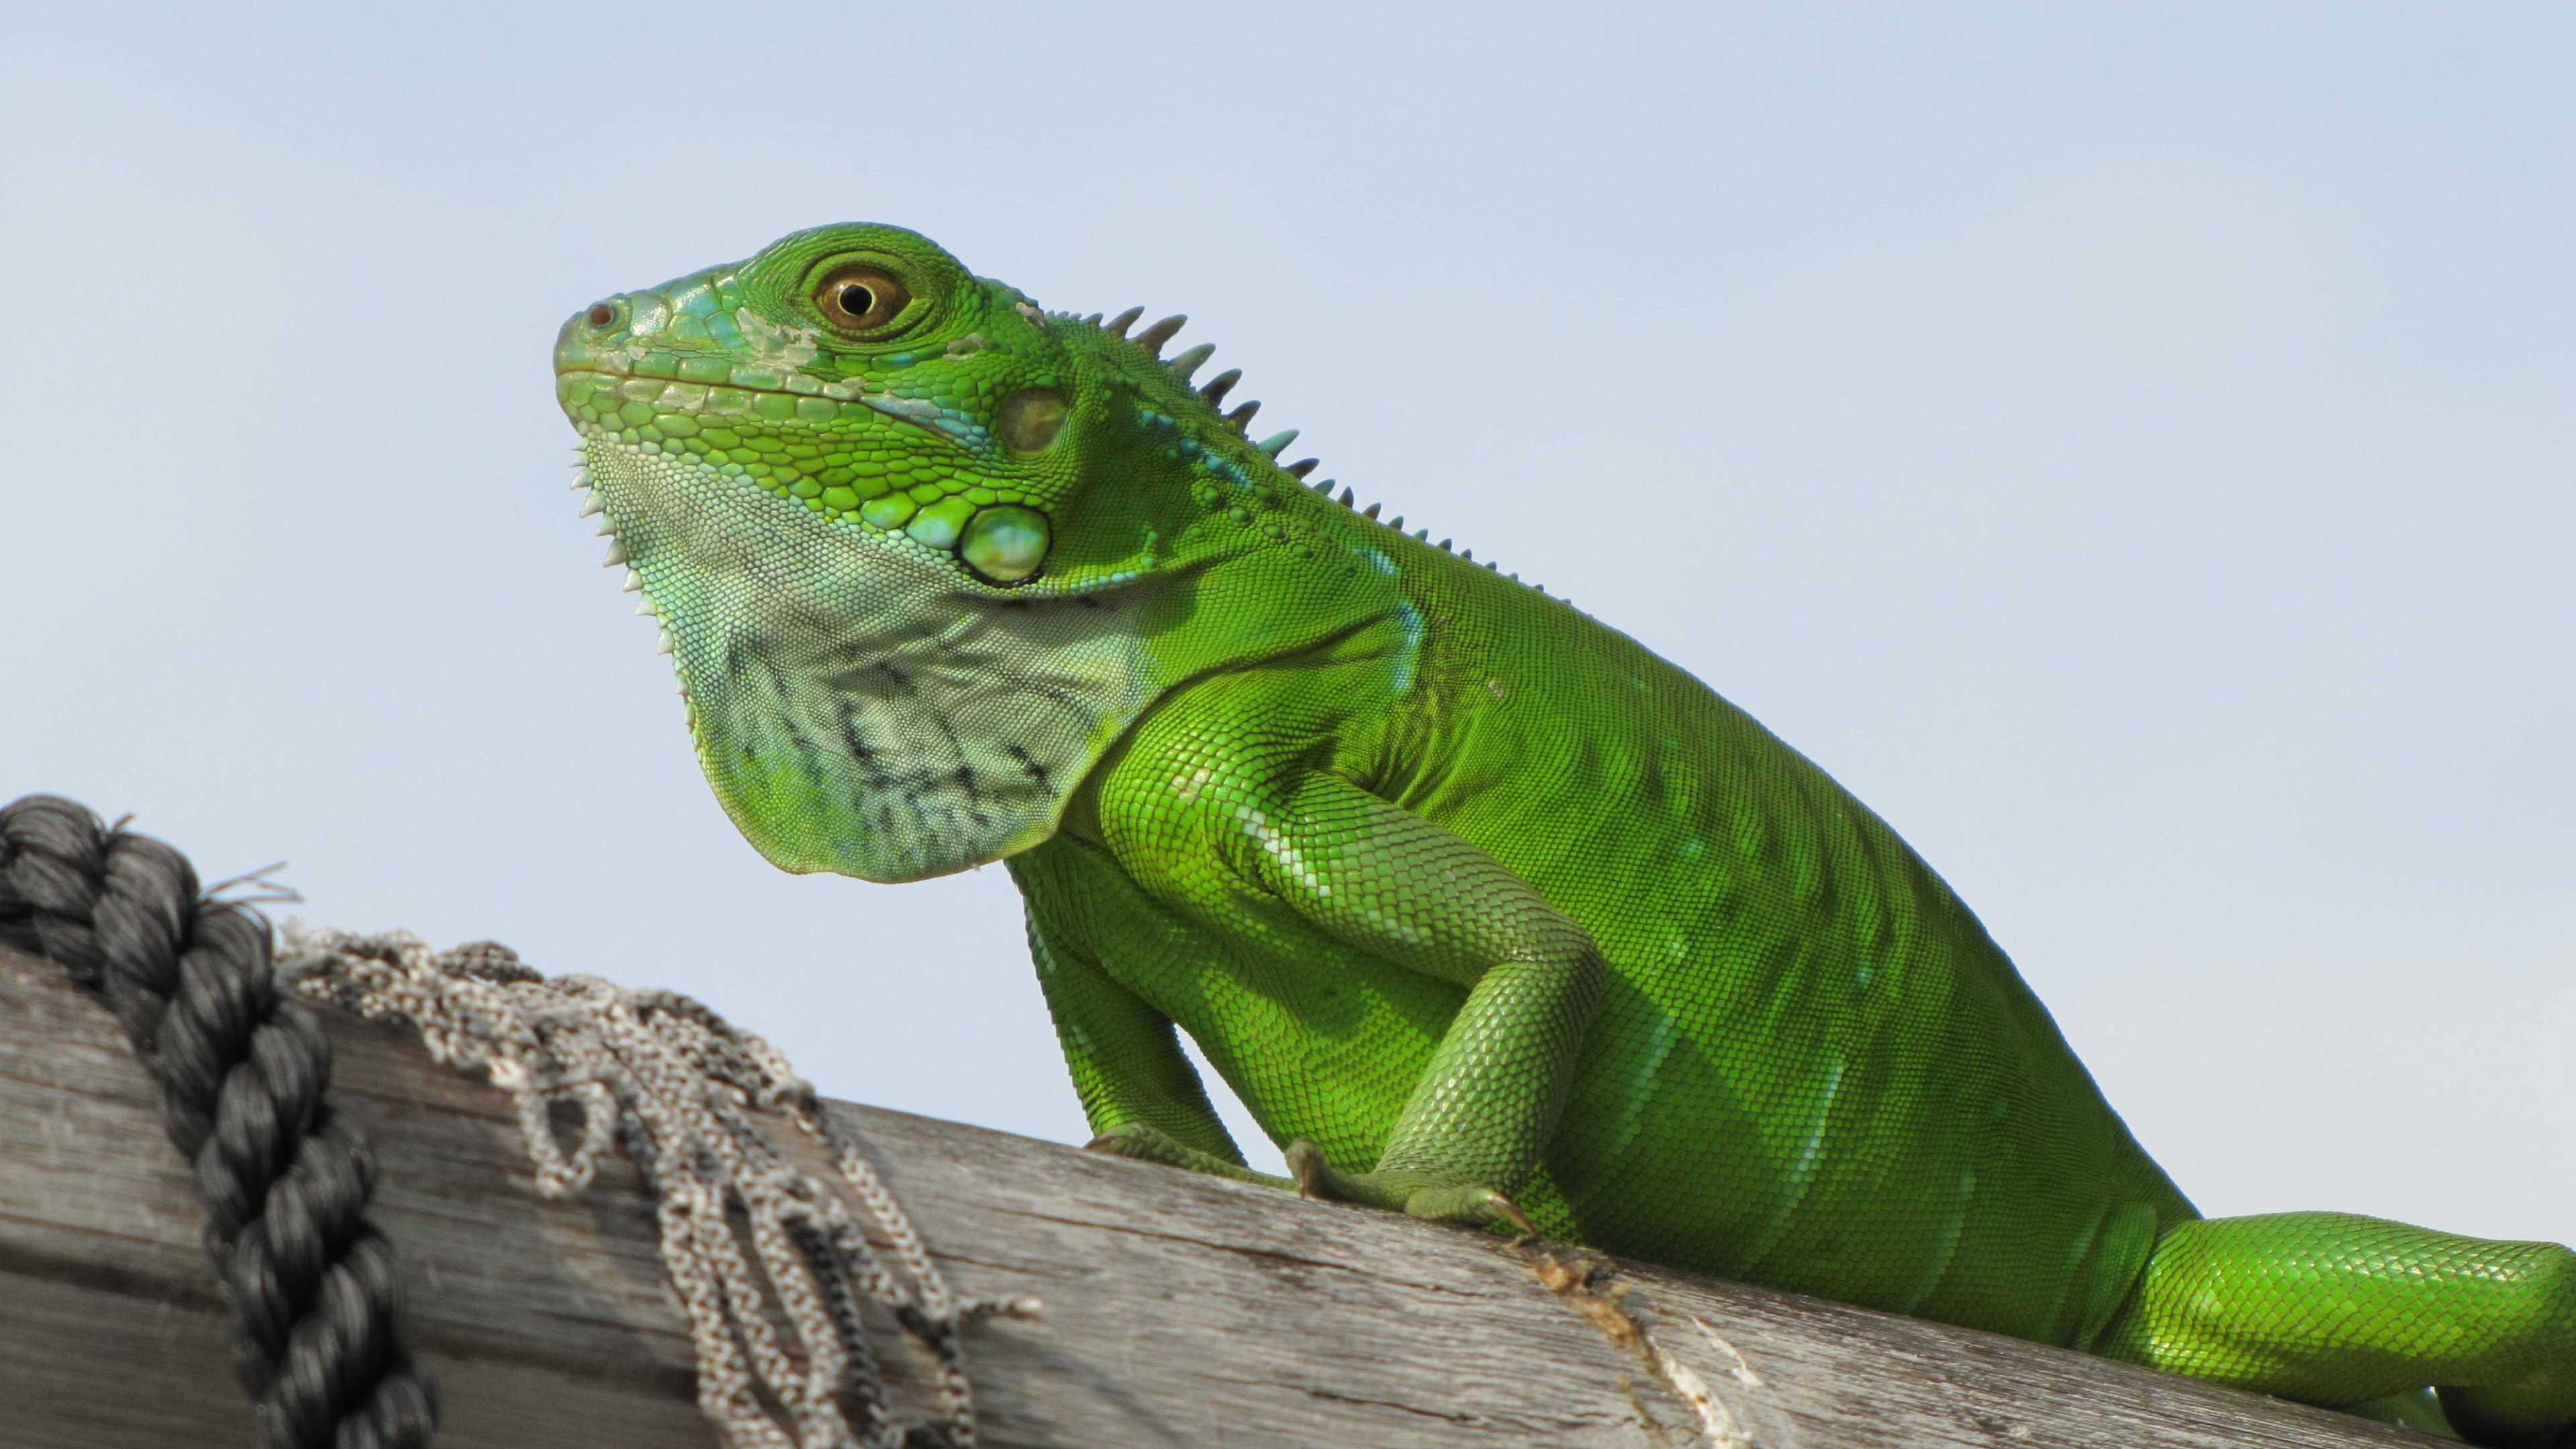 iguana green uhd 4k wallpaper